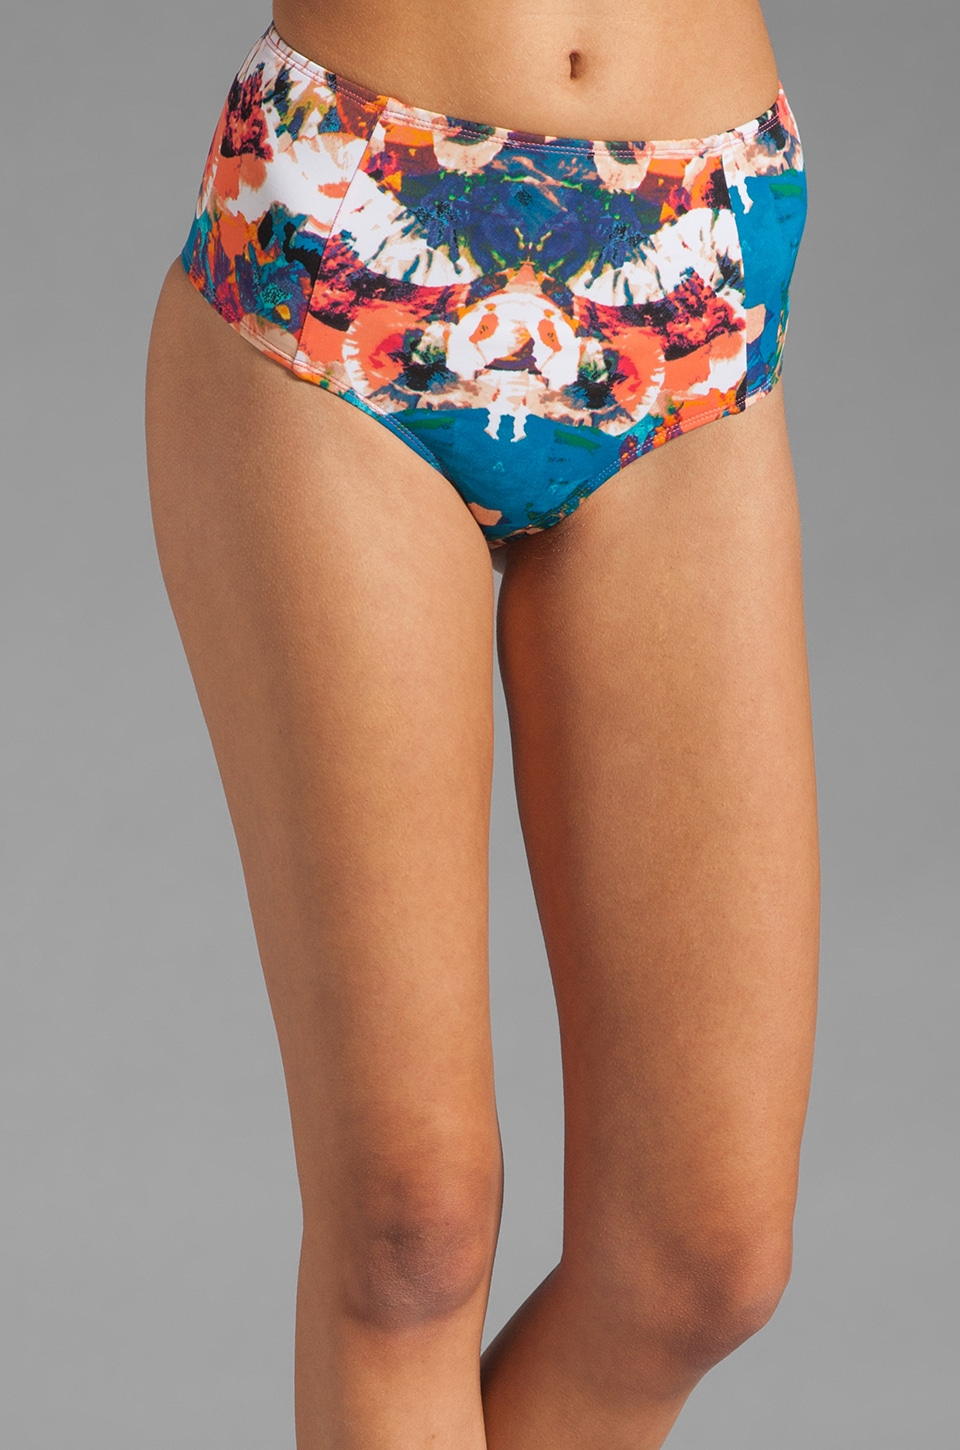 6 SHORE ROAD Bocas Bottom in Passion Floral